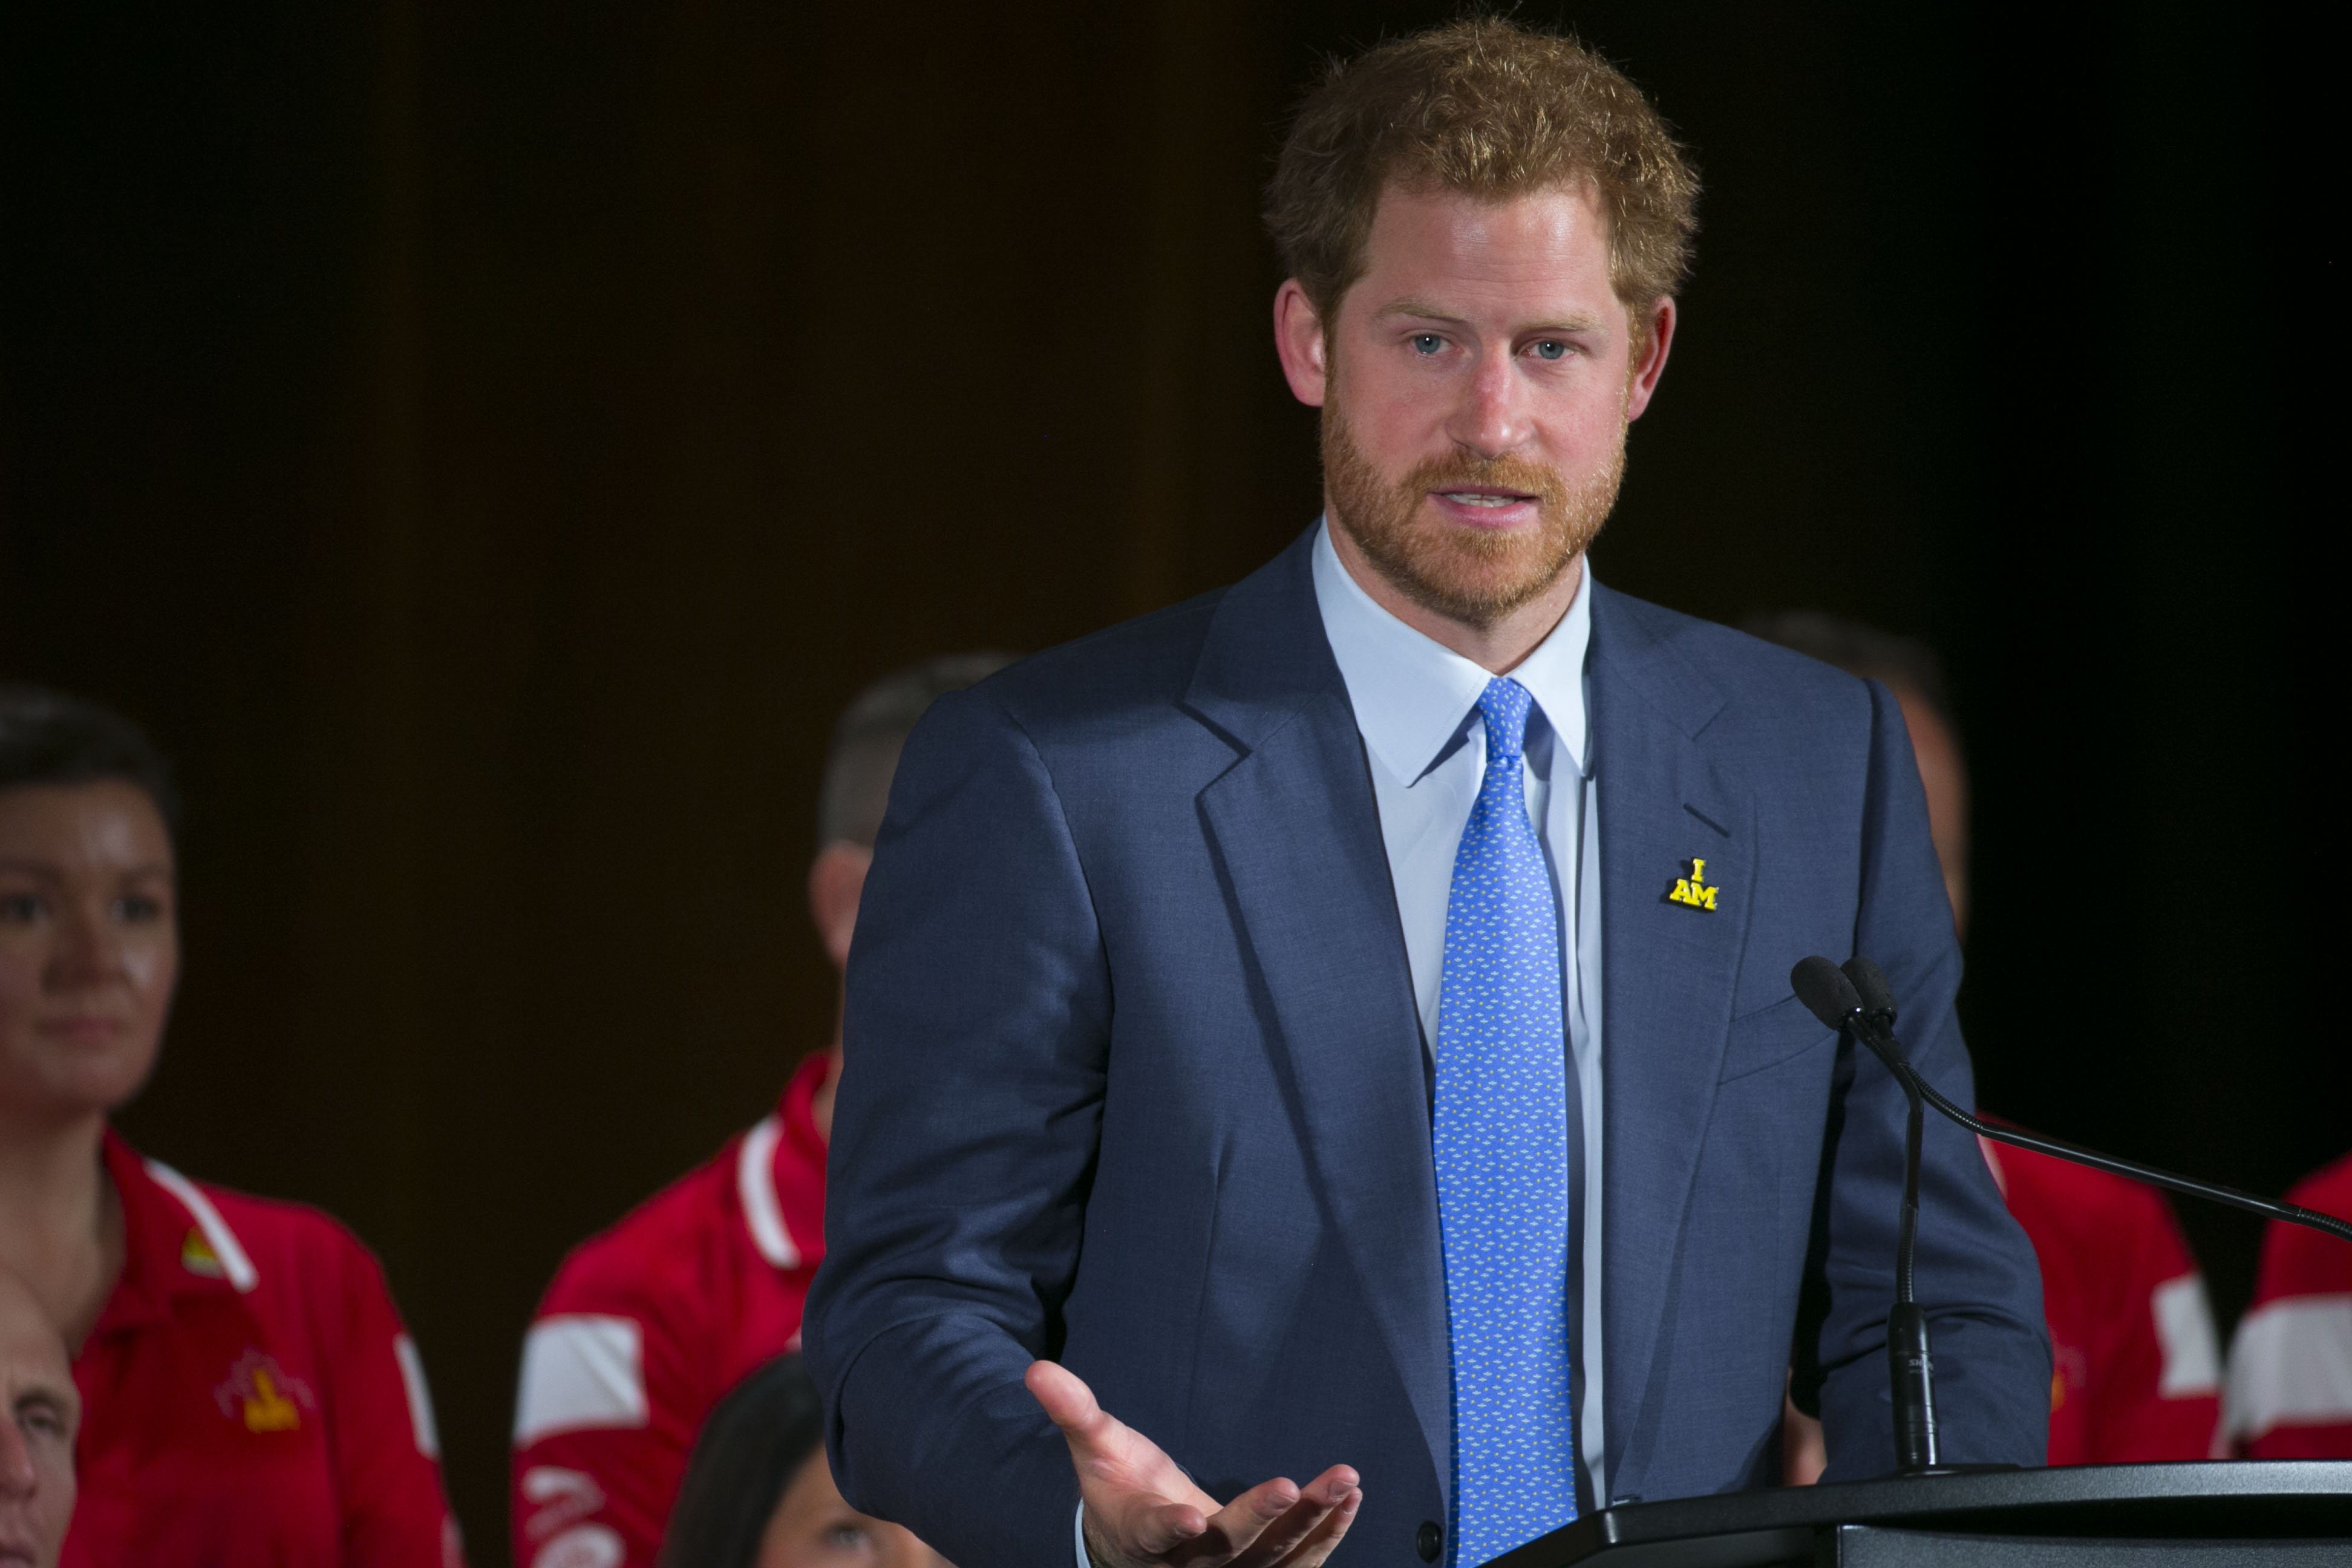 Prince Harry Opens Up About His Mom in People Magazine Interview